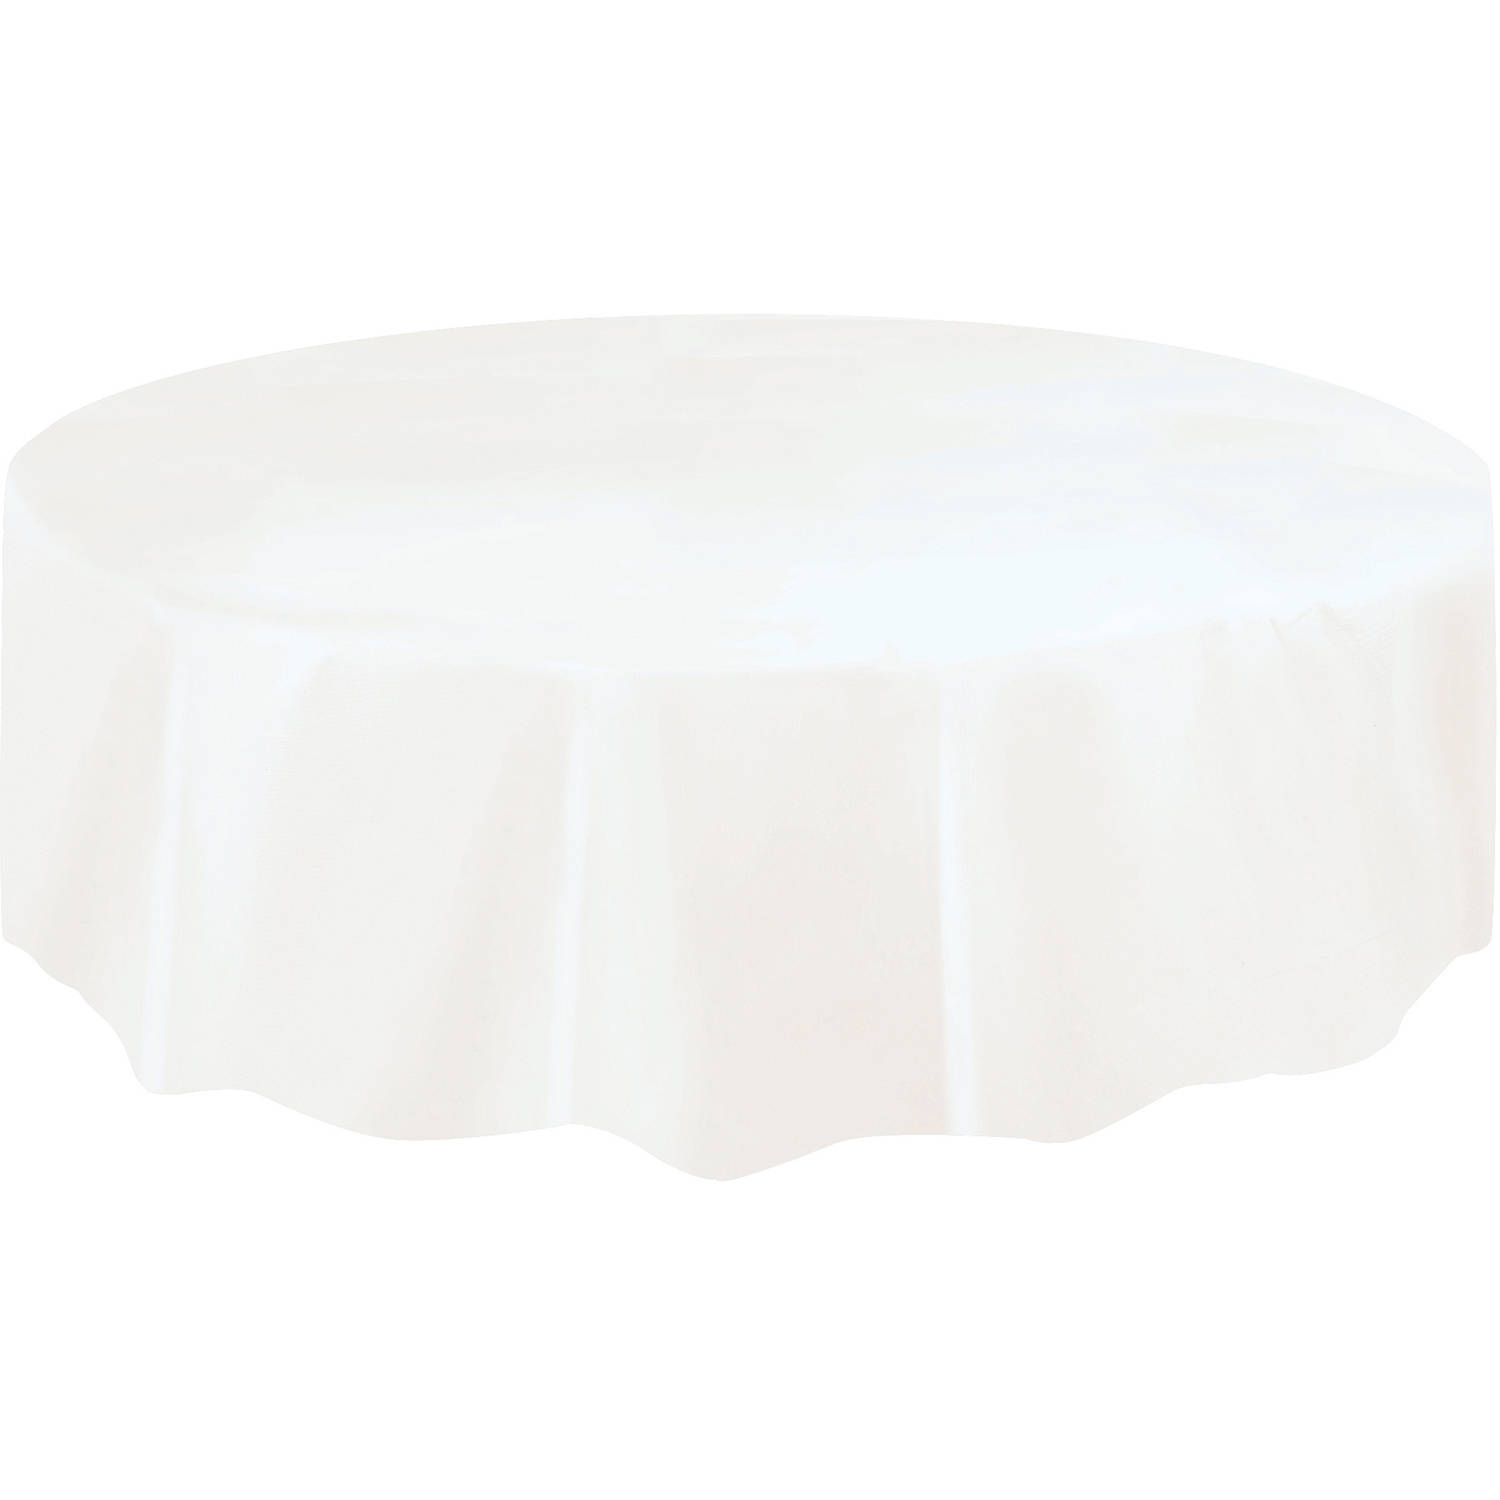 White Plastic Party Tablecloth, Round, 84in